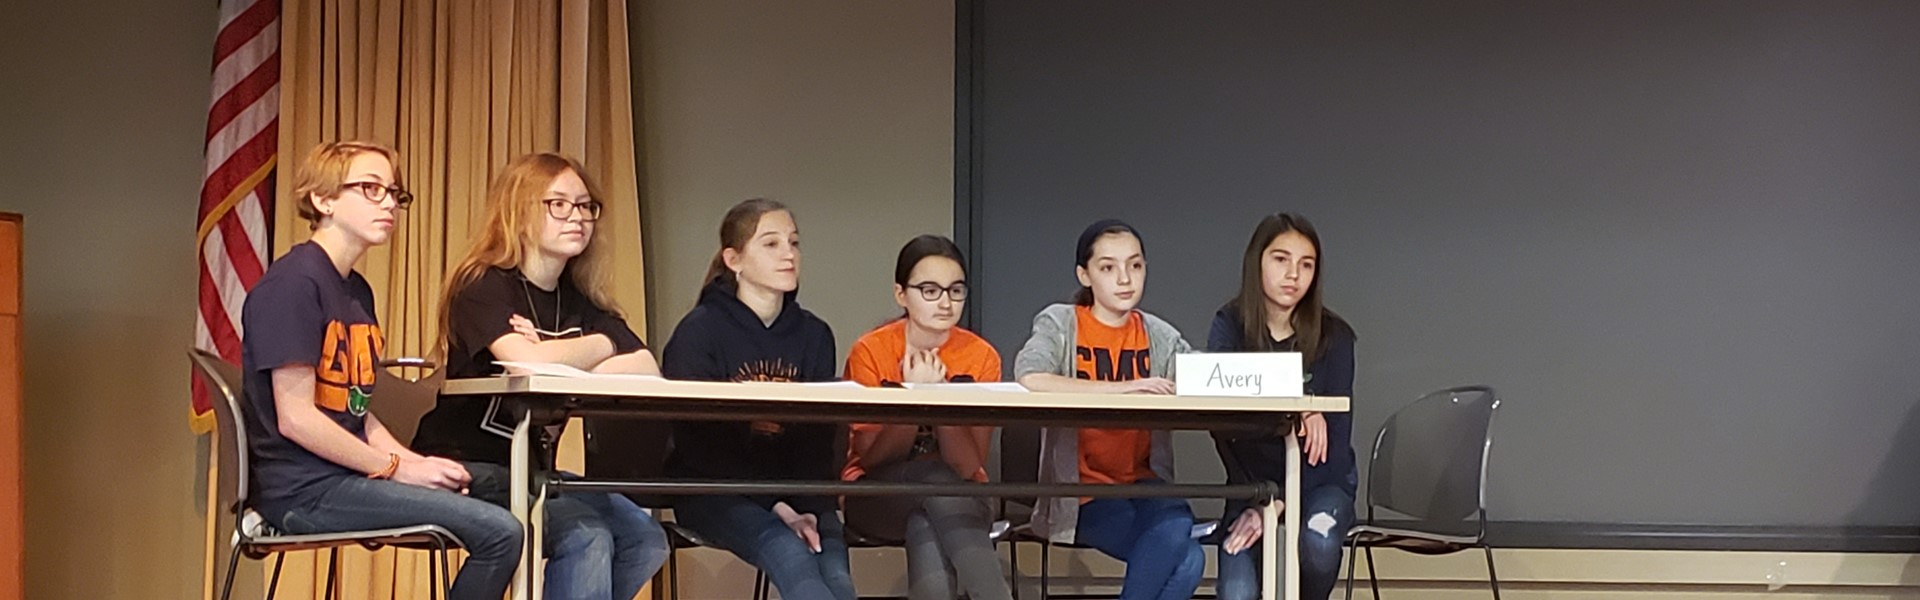 2nd Annual Battle of the Books Champions